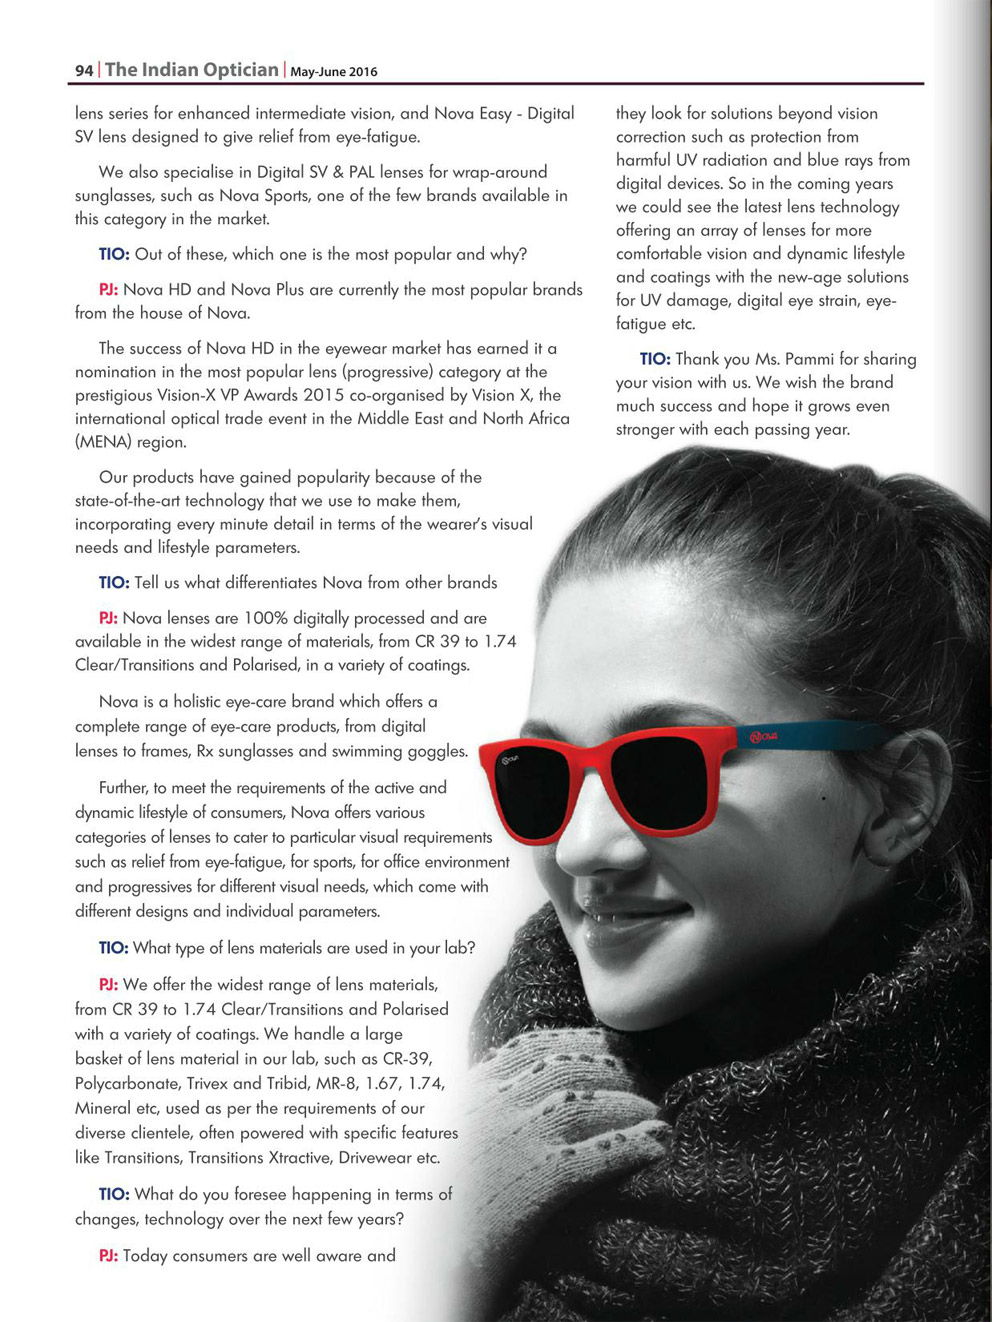 The Indian Optician page 3/6